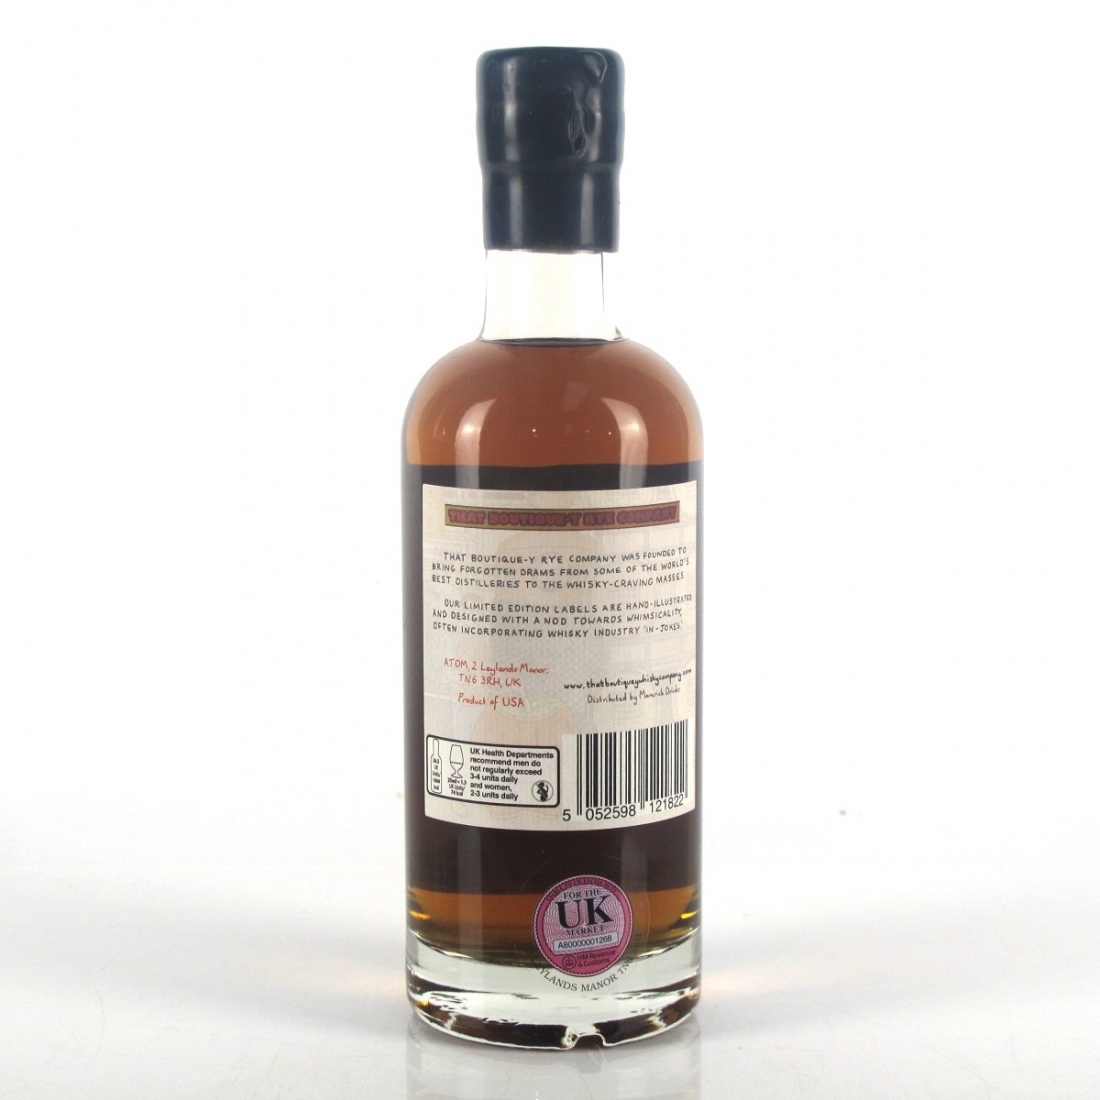 New York Distilling Co That Boutique-y Rye Company 2 Year Old Batch #1